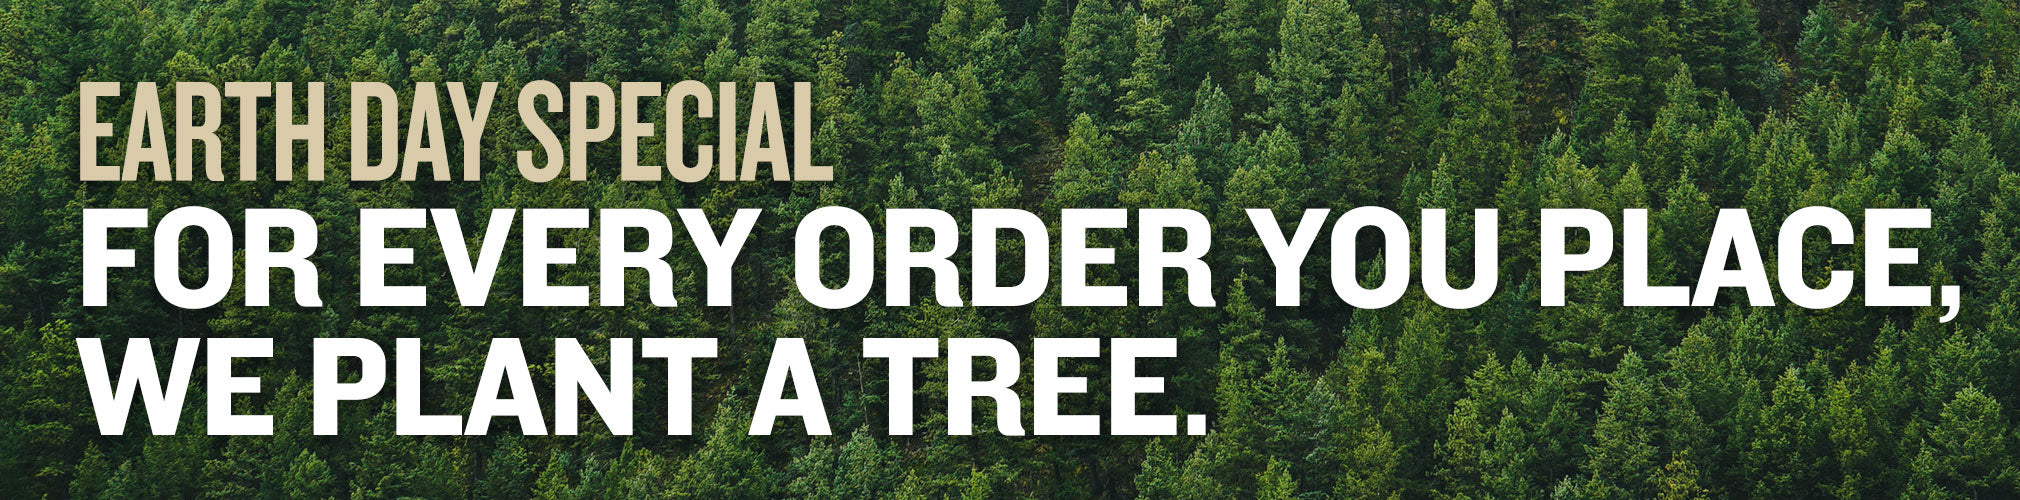 We're planting a tree in your honor for every order this weekend!